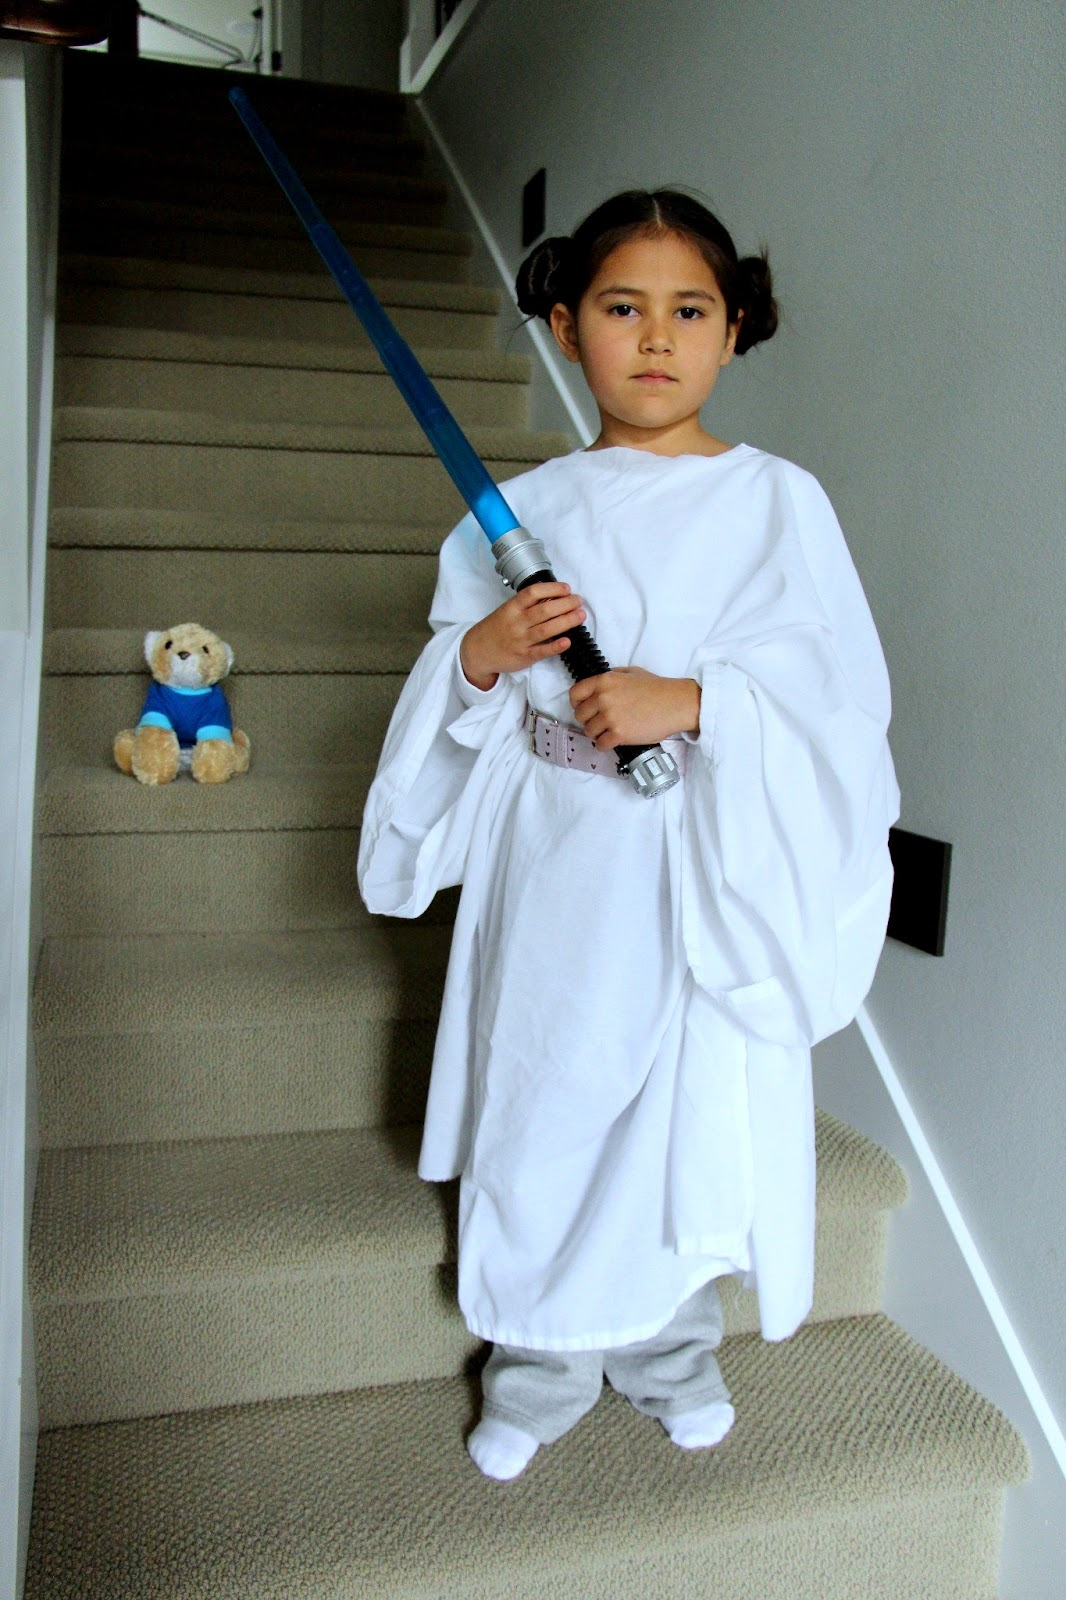 2-Minute Princess Leia Costume  sc 1 st  The Contemplative Creative & The Contemplative Creative: 2-Minute Princess Leia Costume